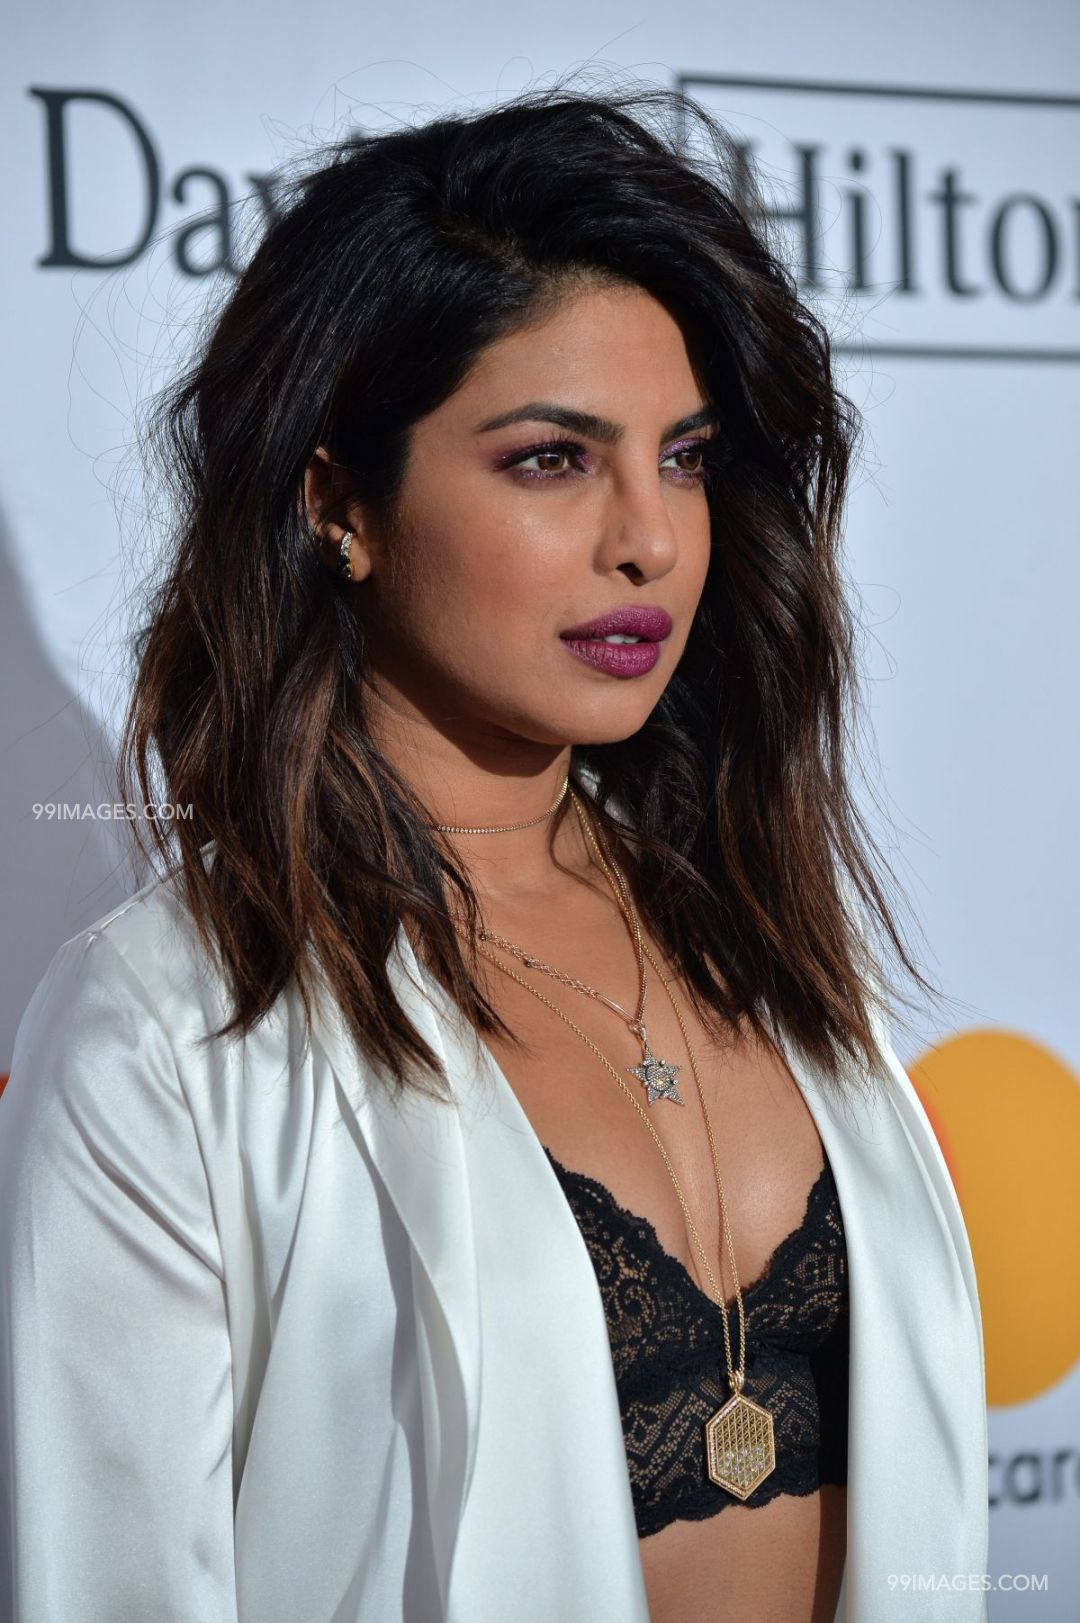 Priyanka Chopra Hot Hd Photos 1080p